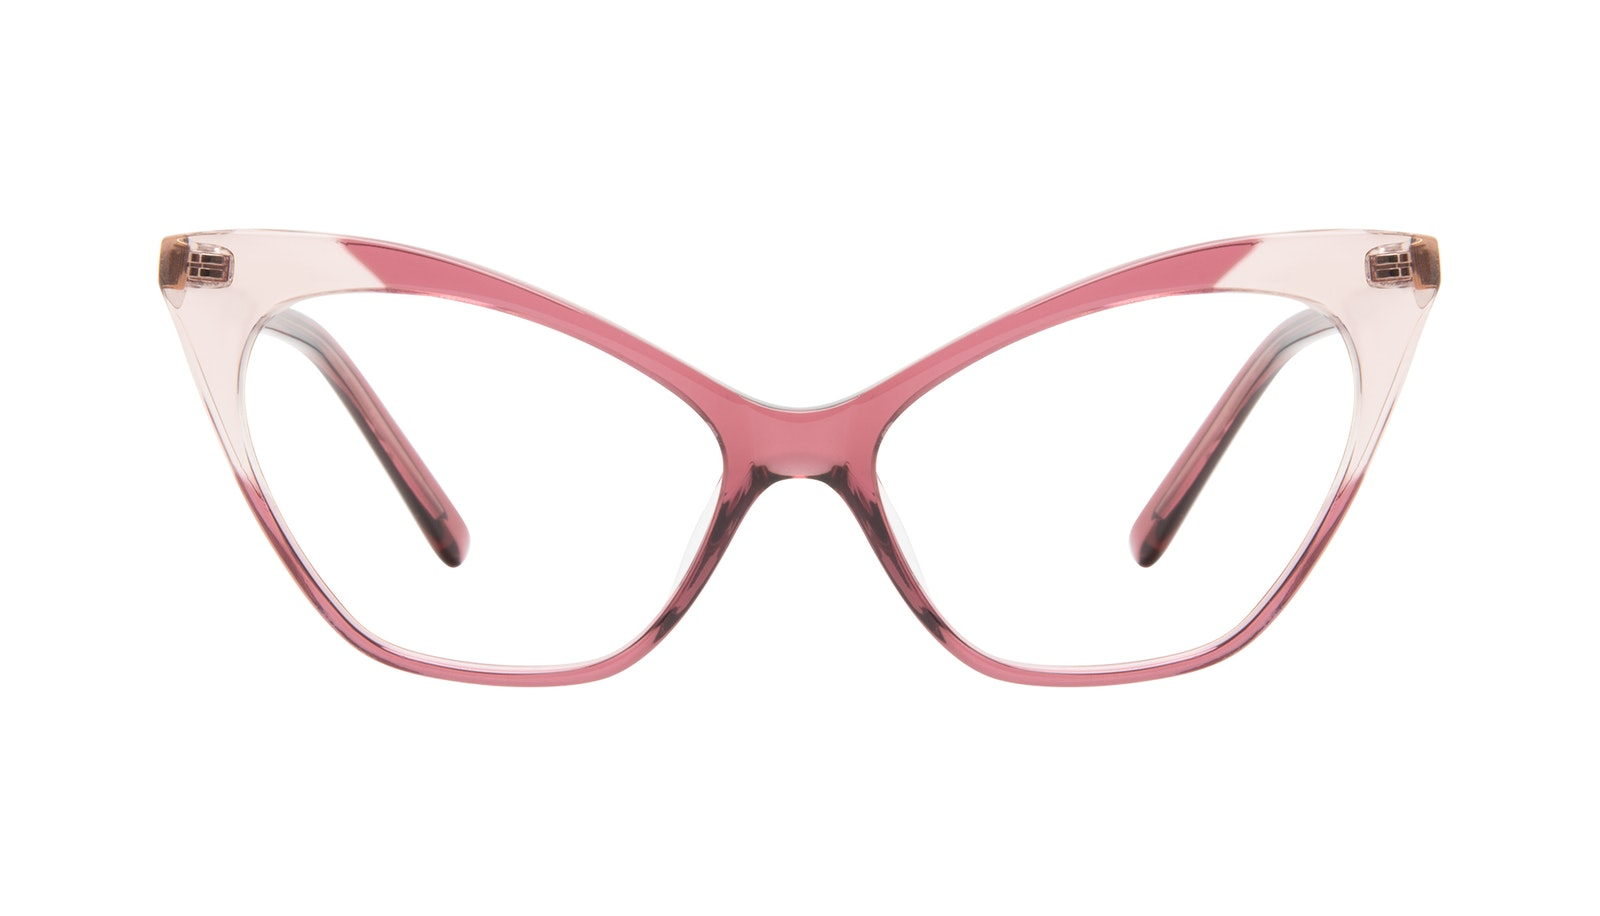 Affordable Fashion Glasses Cat Eye Eyeglasses Women Gossip Orchid Pink